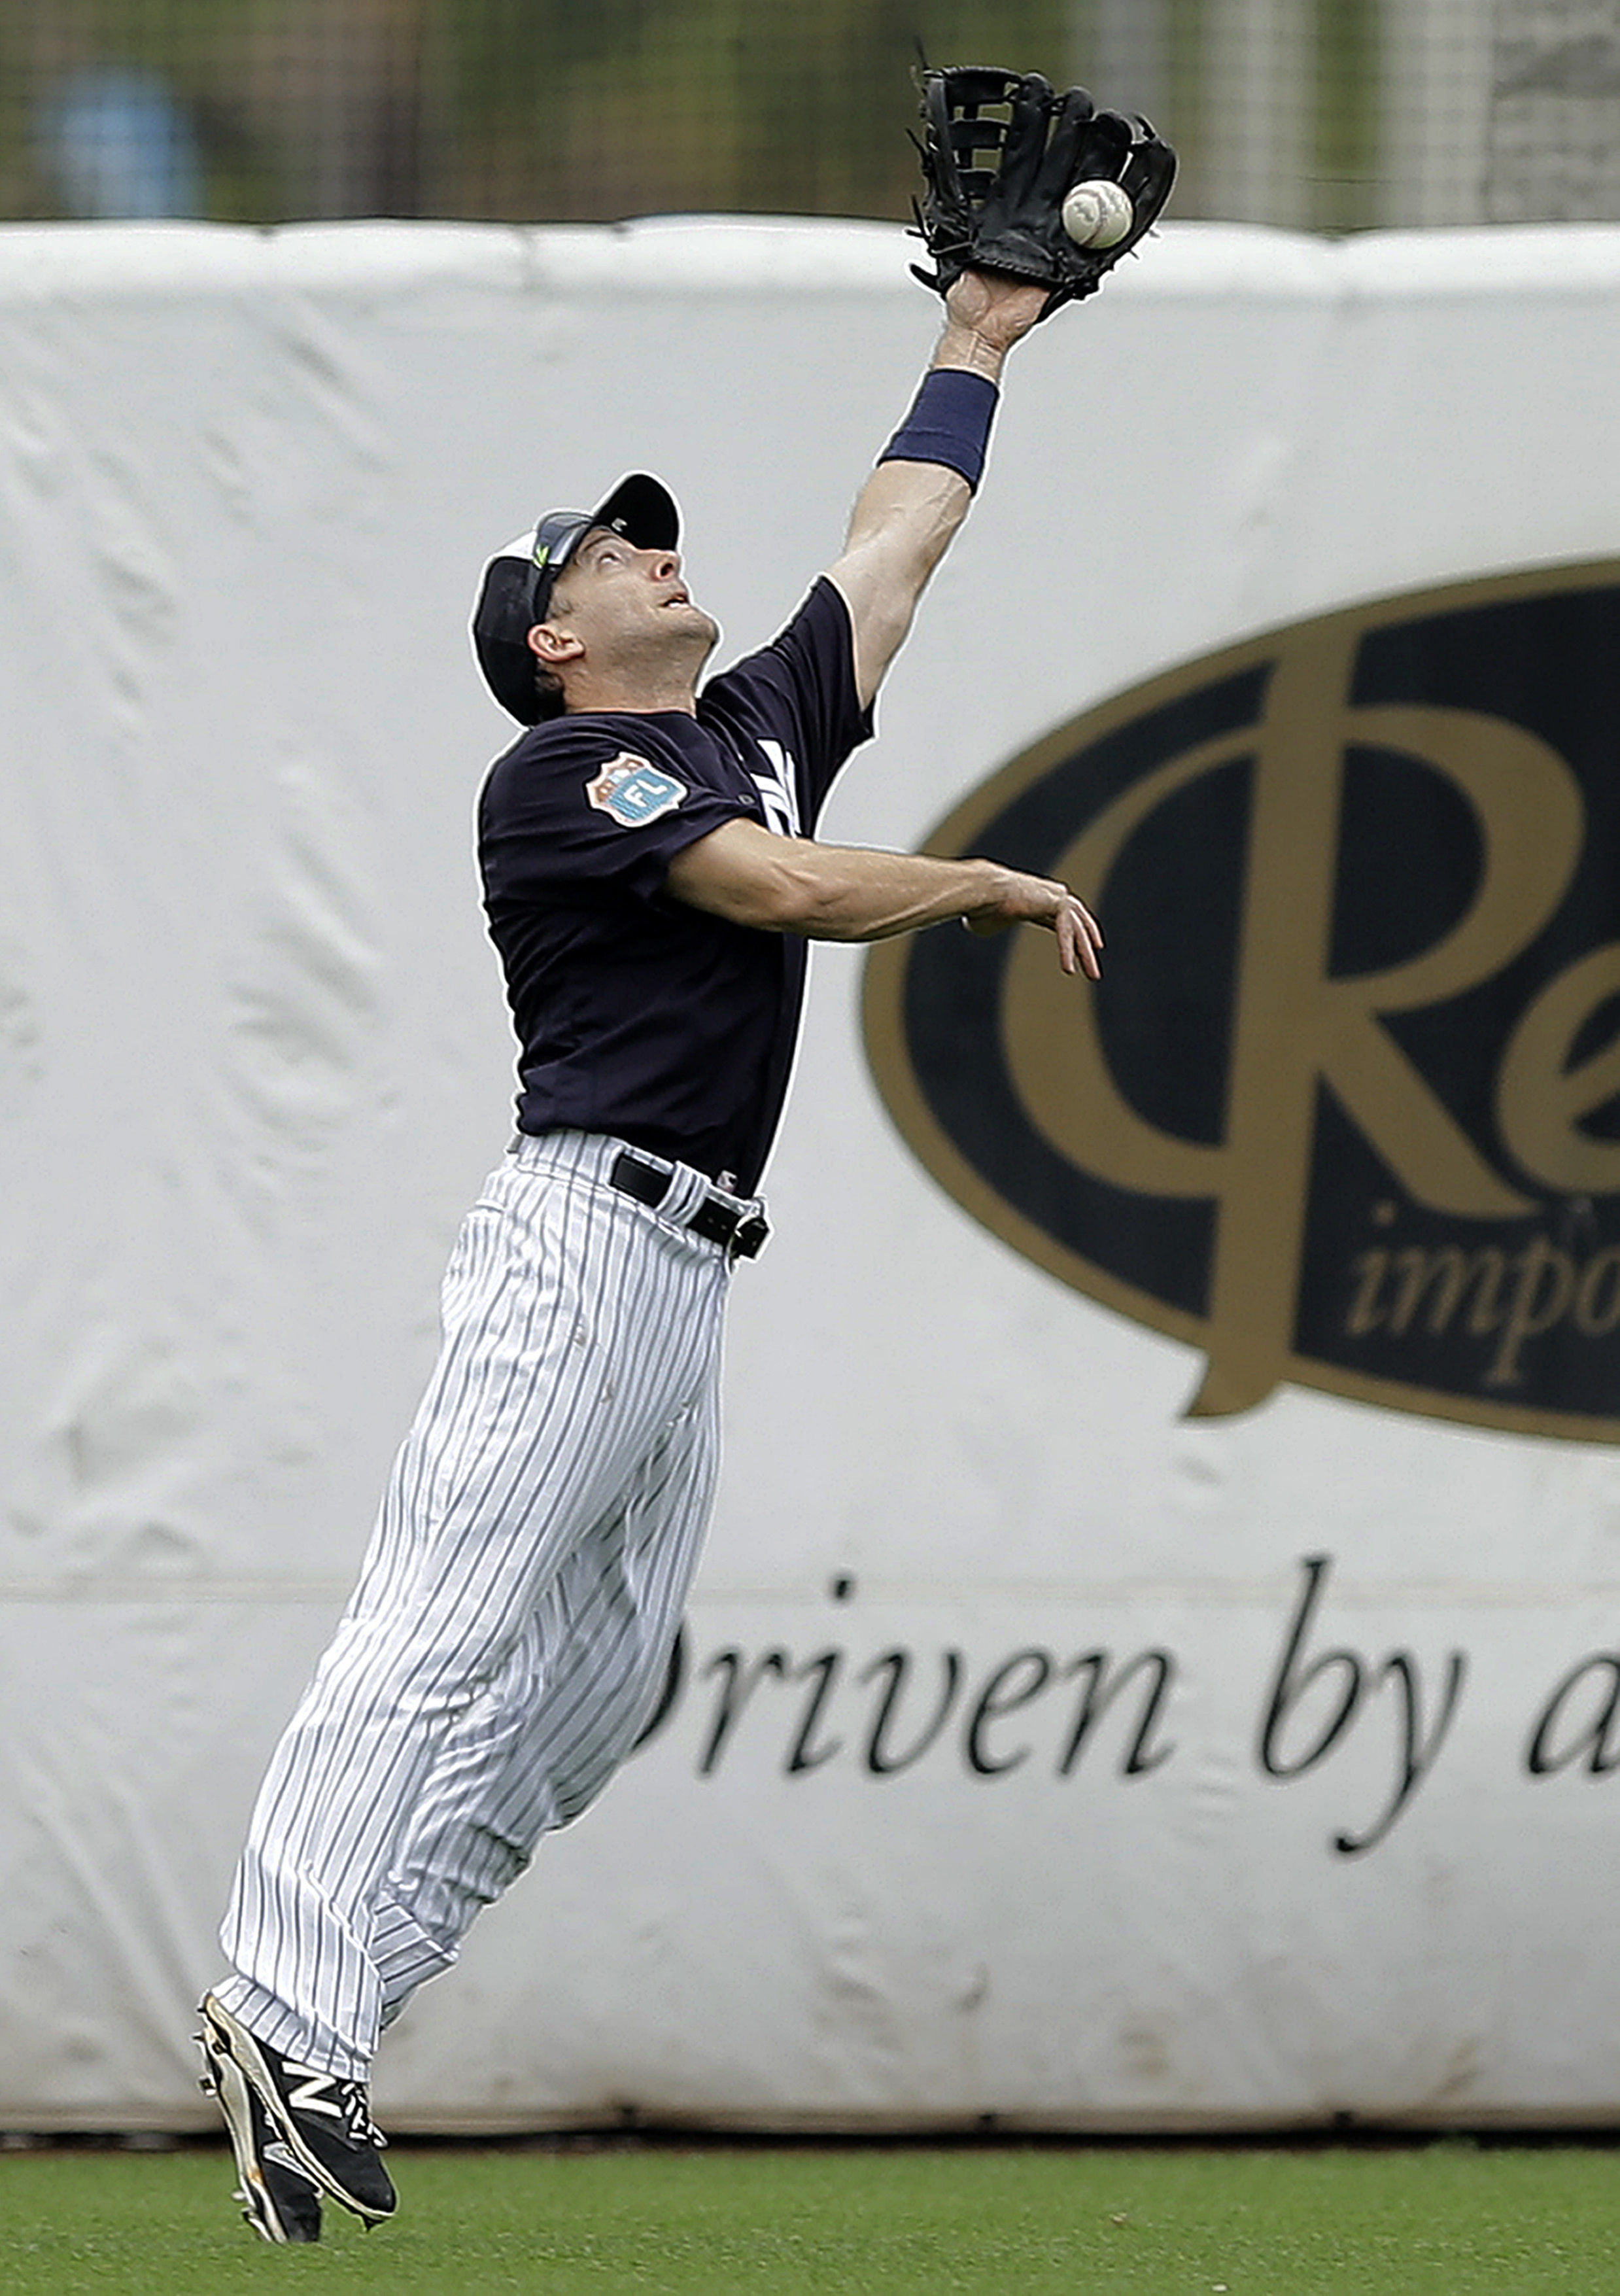 New York Yankees left fielder Chris Denorfia can't hang onto a double by Atlanta Braves' Hector Olivera during the fifth inning of a spring training baseball game Saturday, March 19, 2016, in Tampa, Fla. (AP Photo/Chris O'Meara)